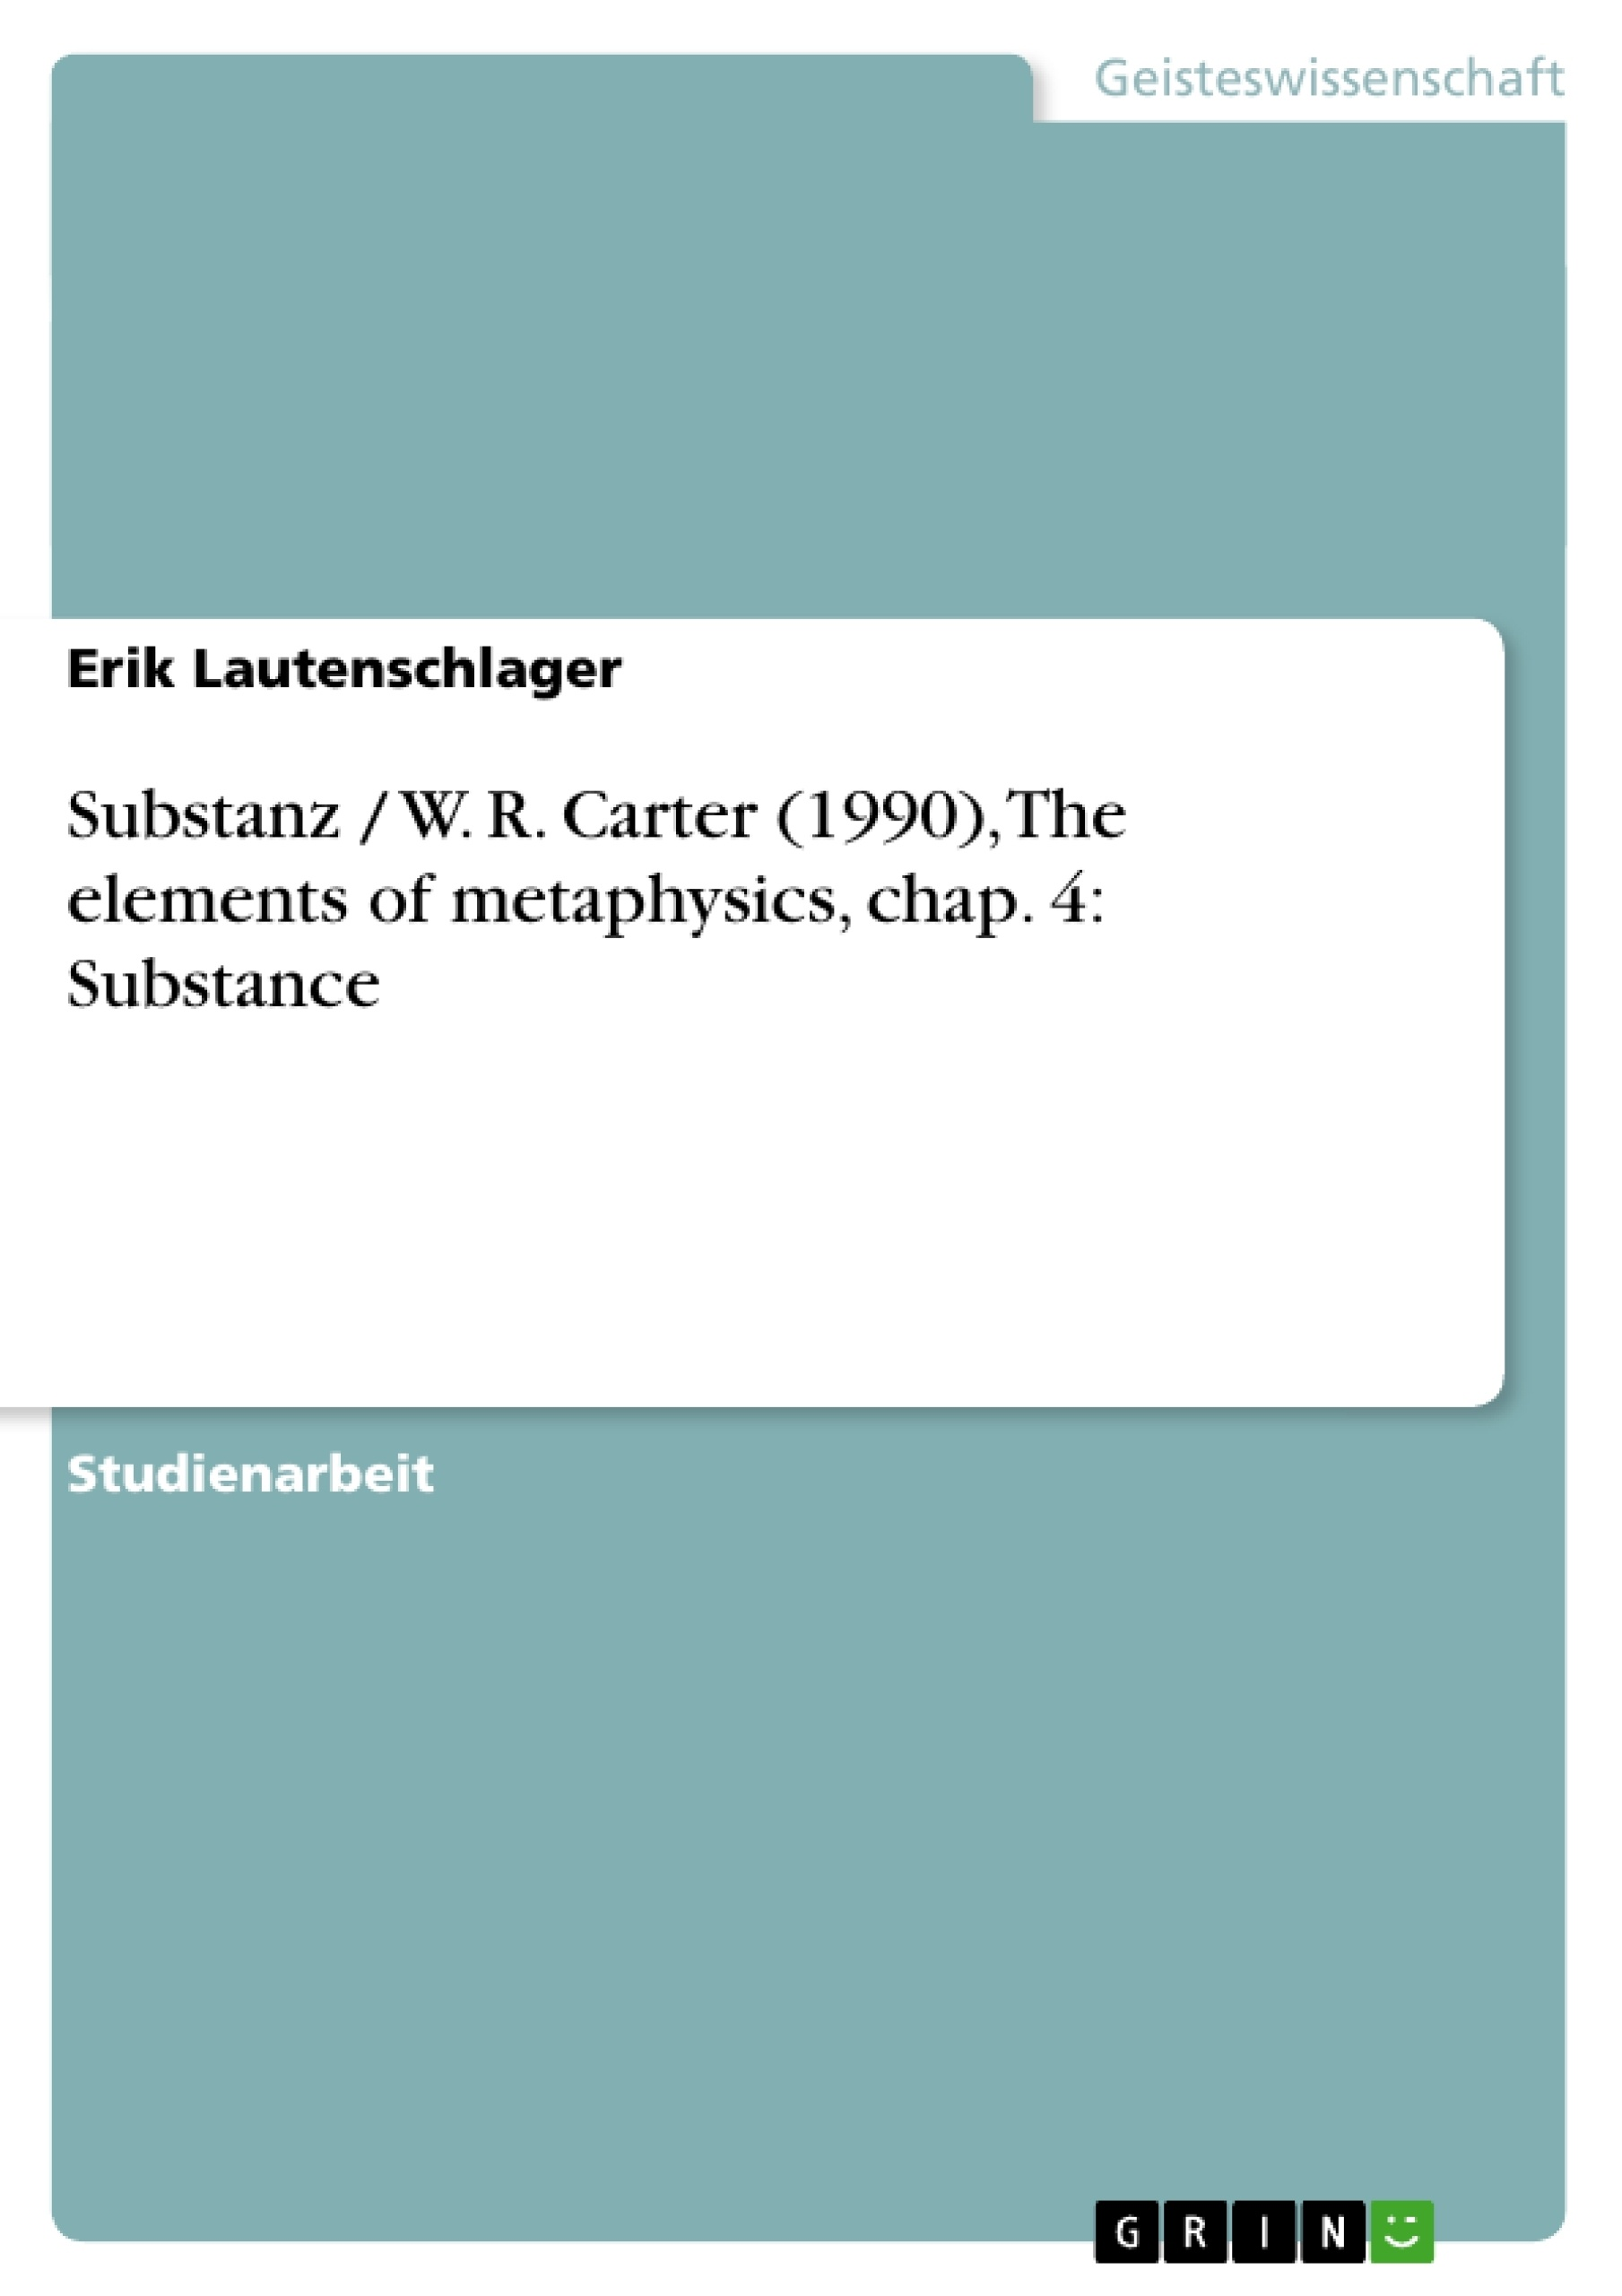 Titel: Substanz / W. R. Carter (1990), The elements of metaphysics, chap. 4: Substance